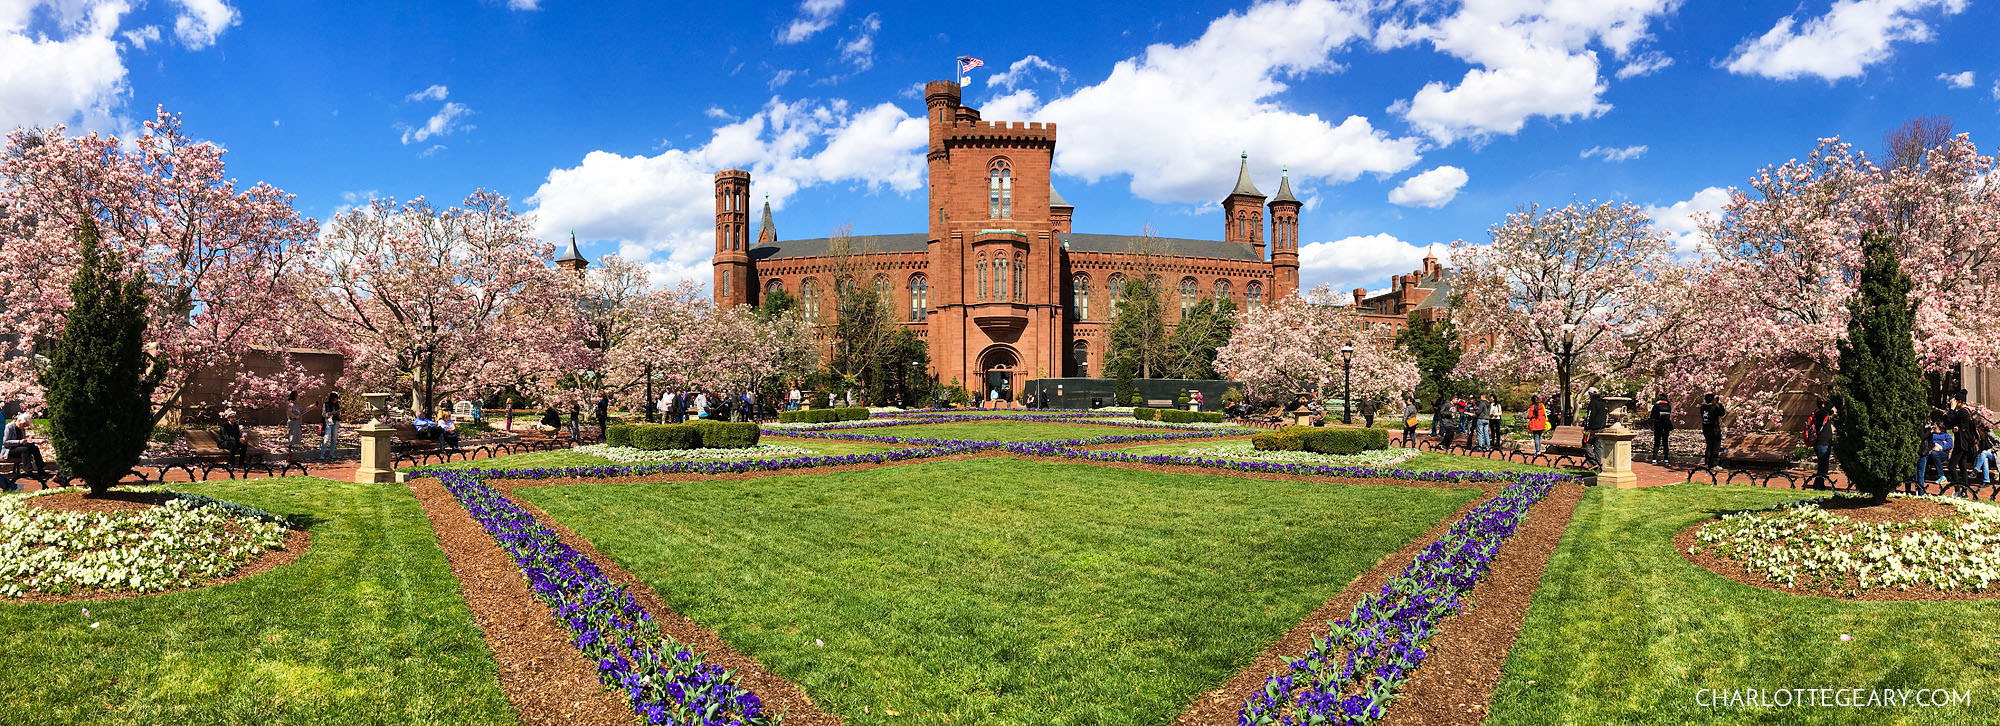 The Smithsonian Castle in Washington, D.C.